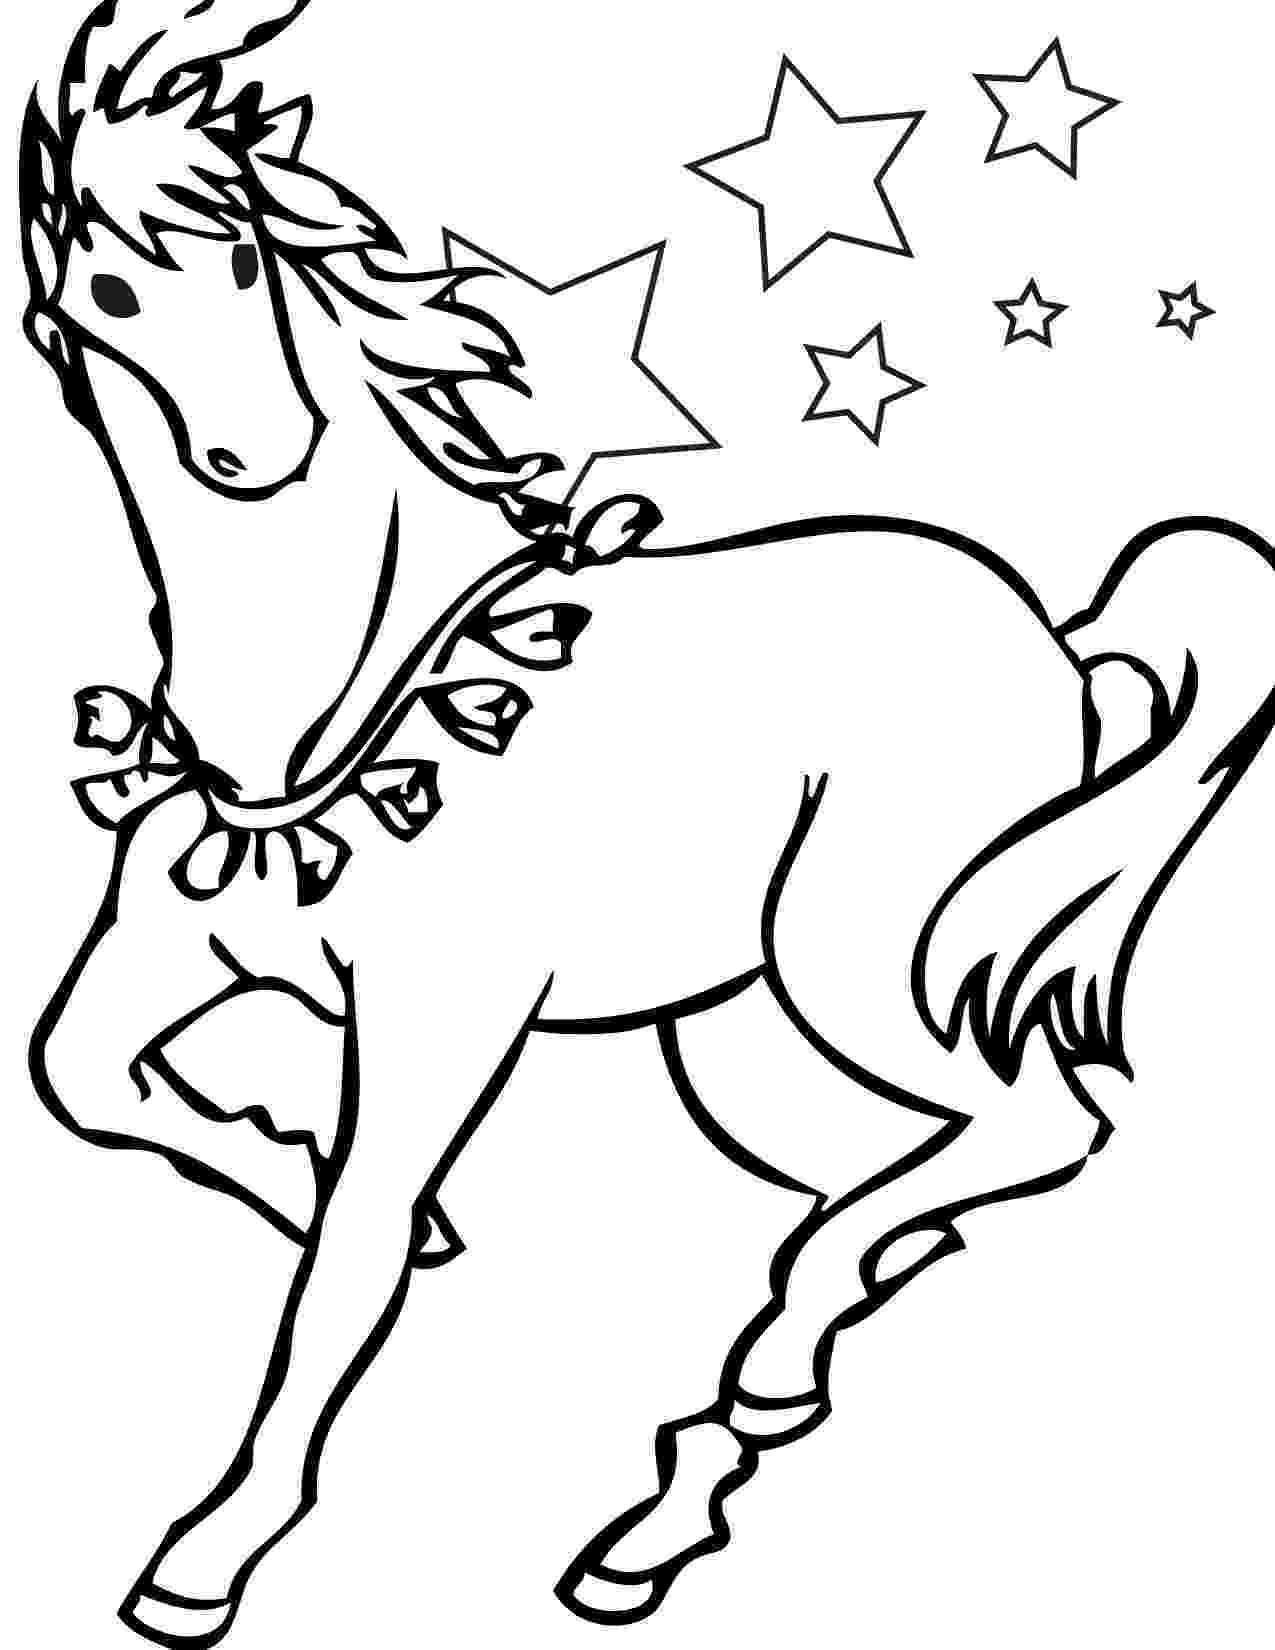 horse picture to colour coloring pages for kids horse coloring pages horse colour picture to